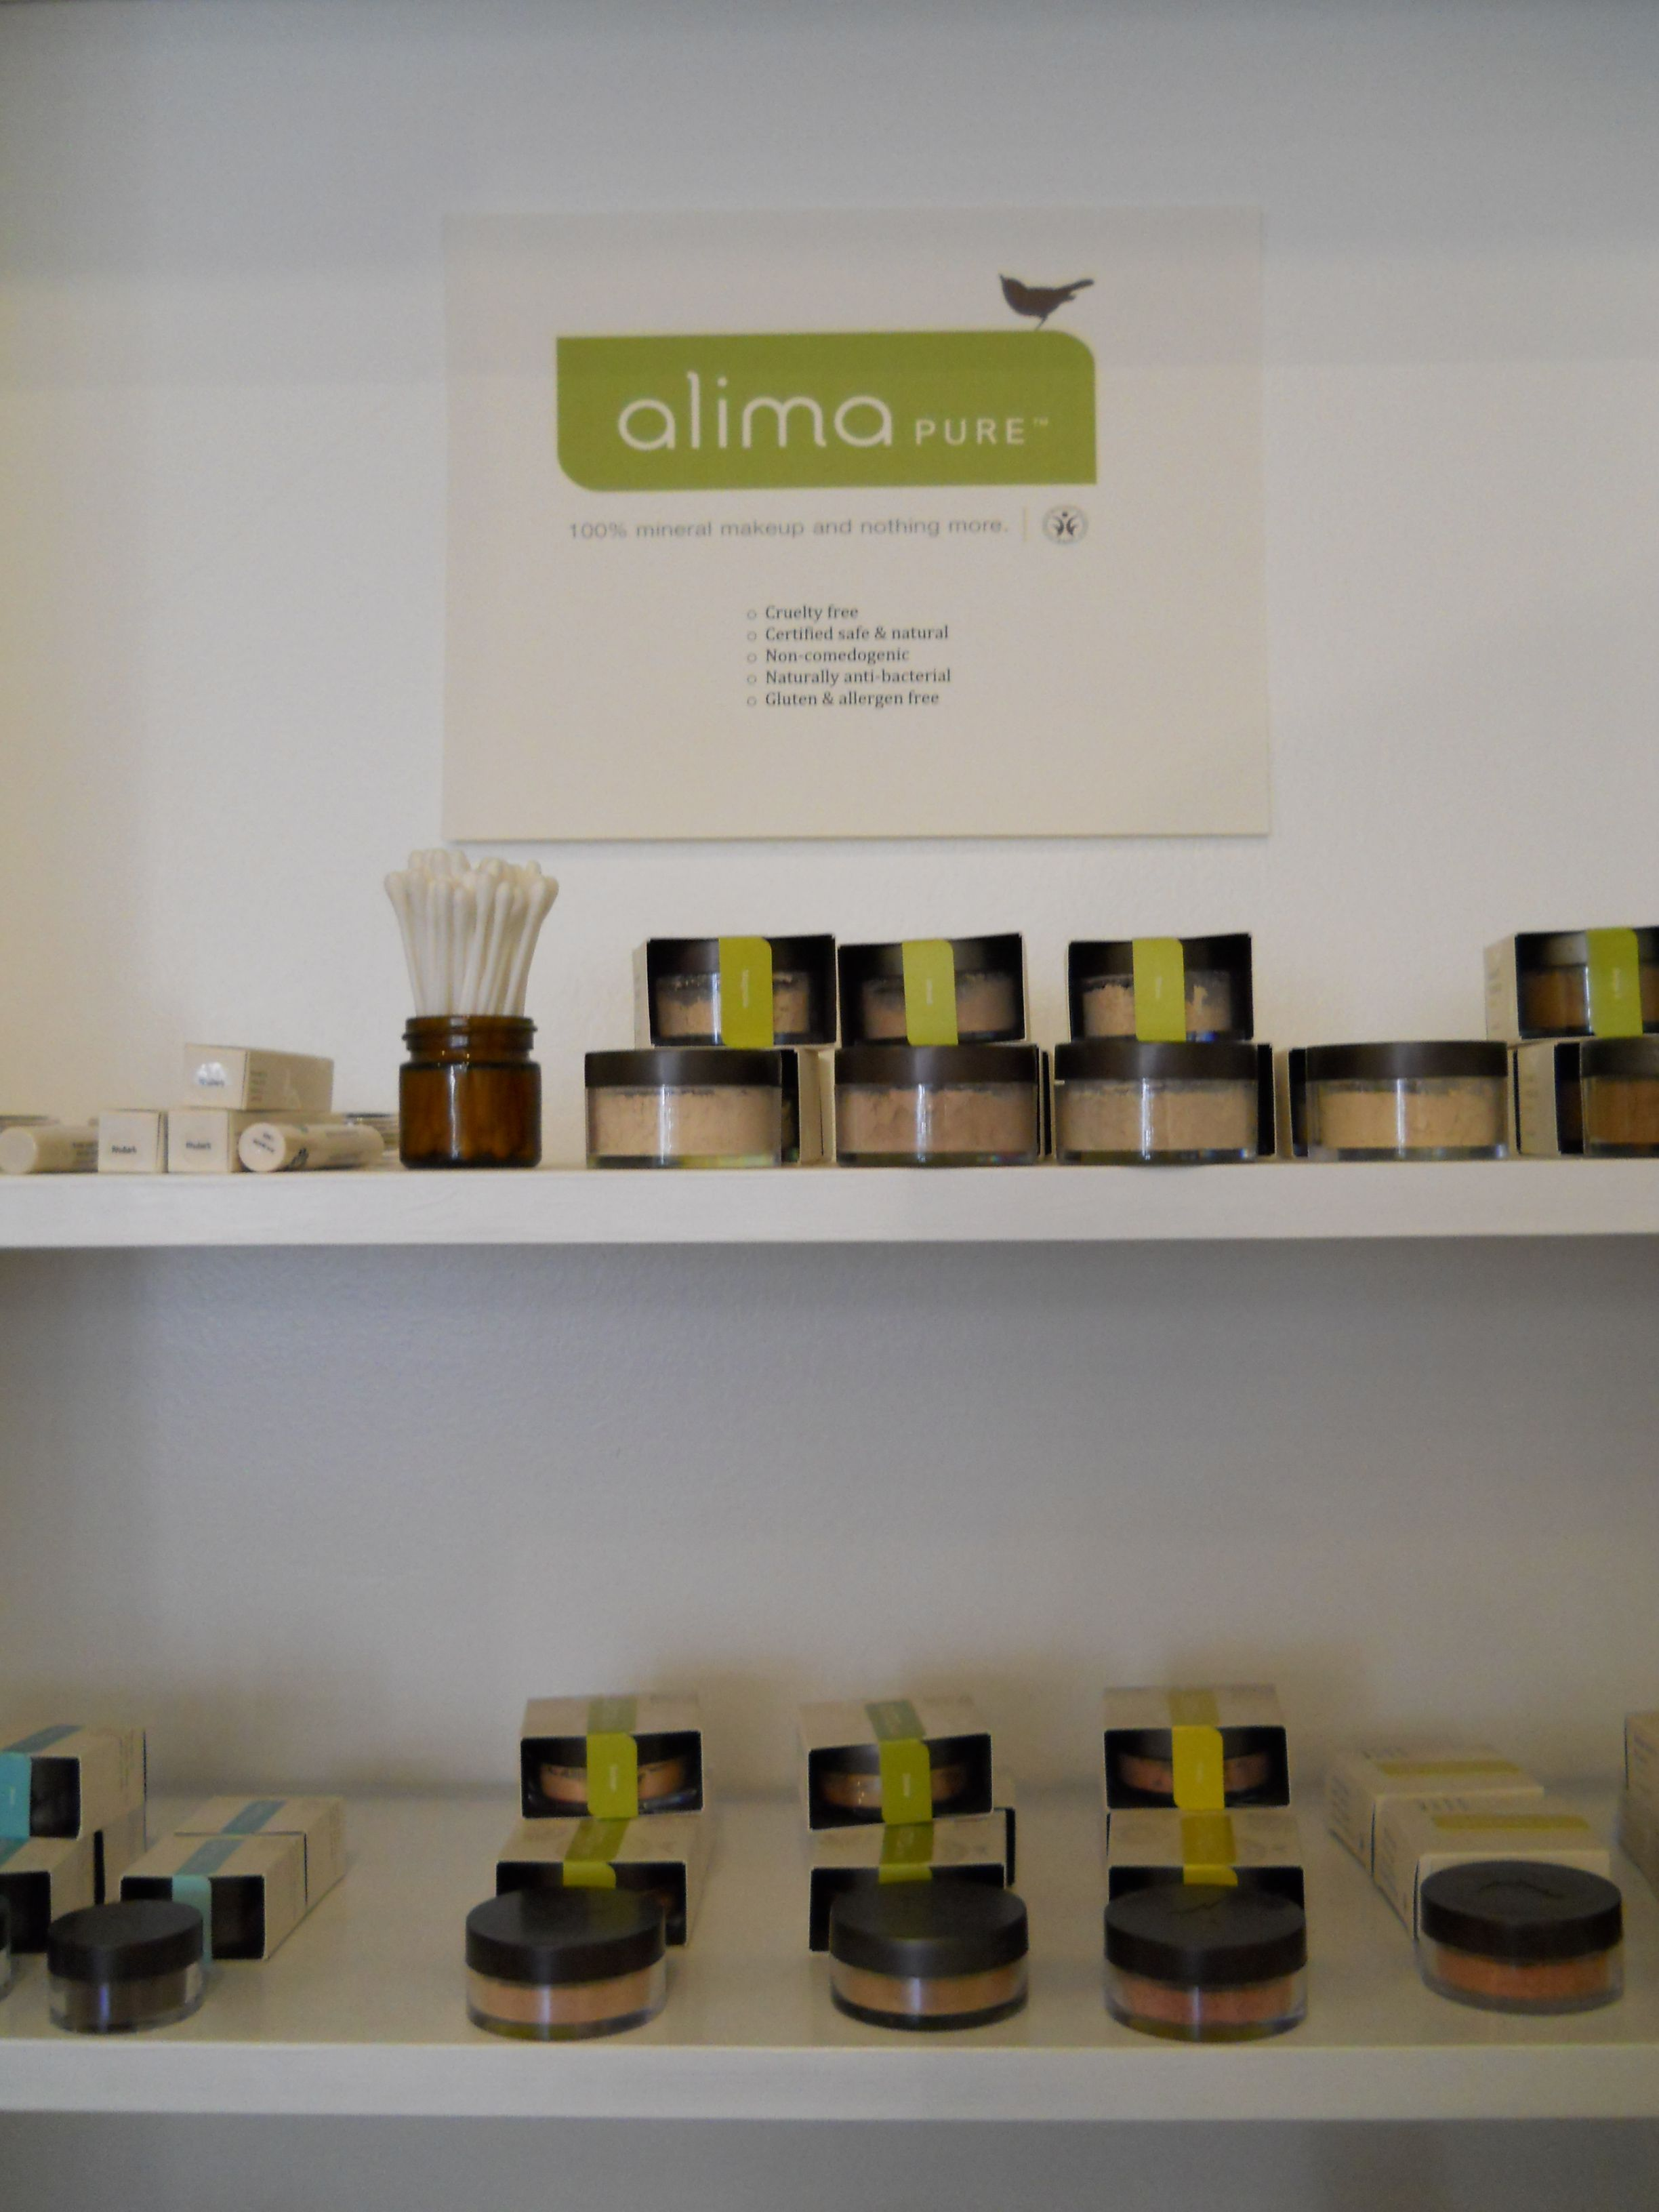 Pin by The Herb Shoppe Brooklyn on New! Alima pure, Pure